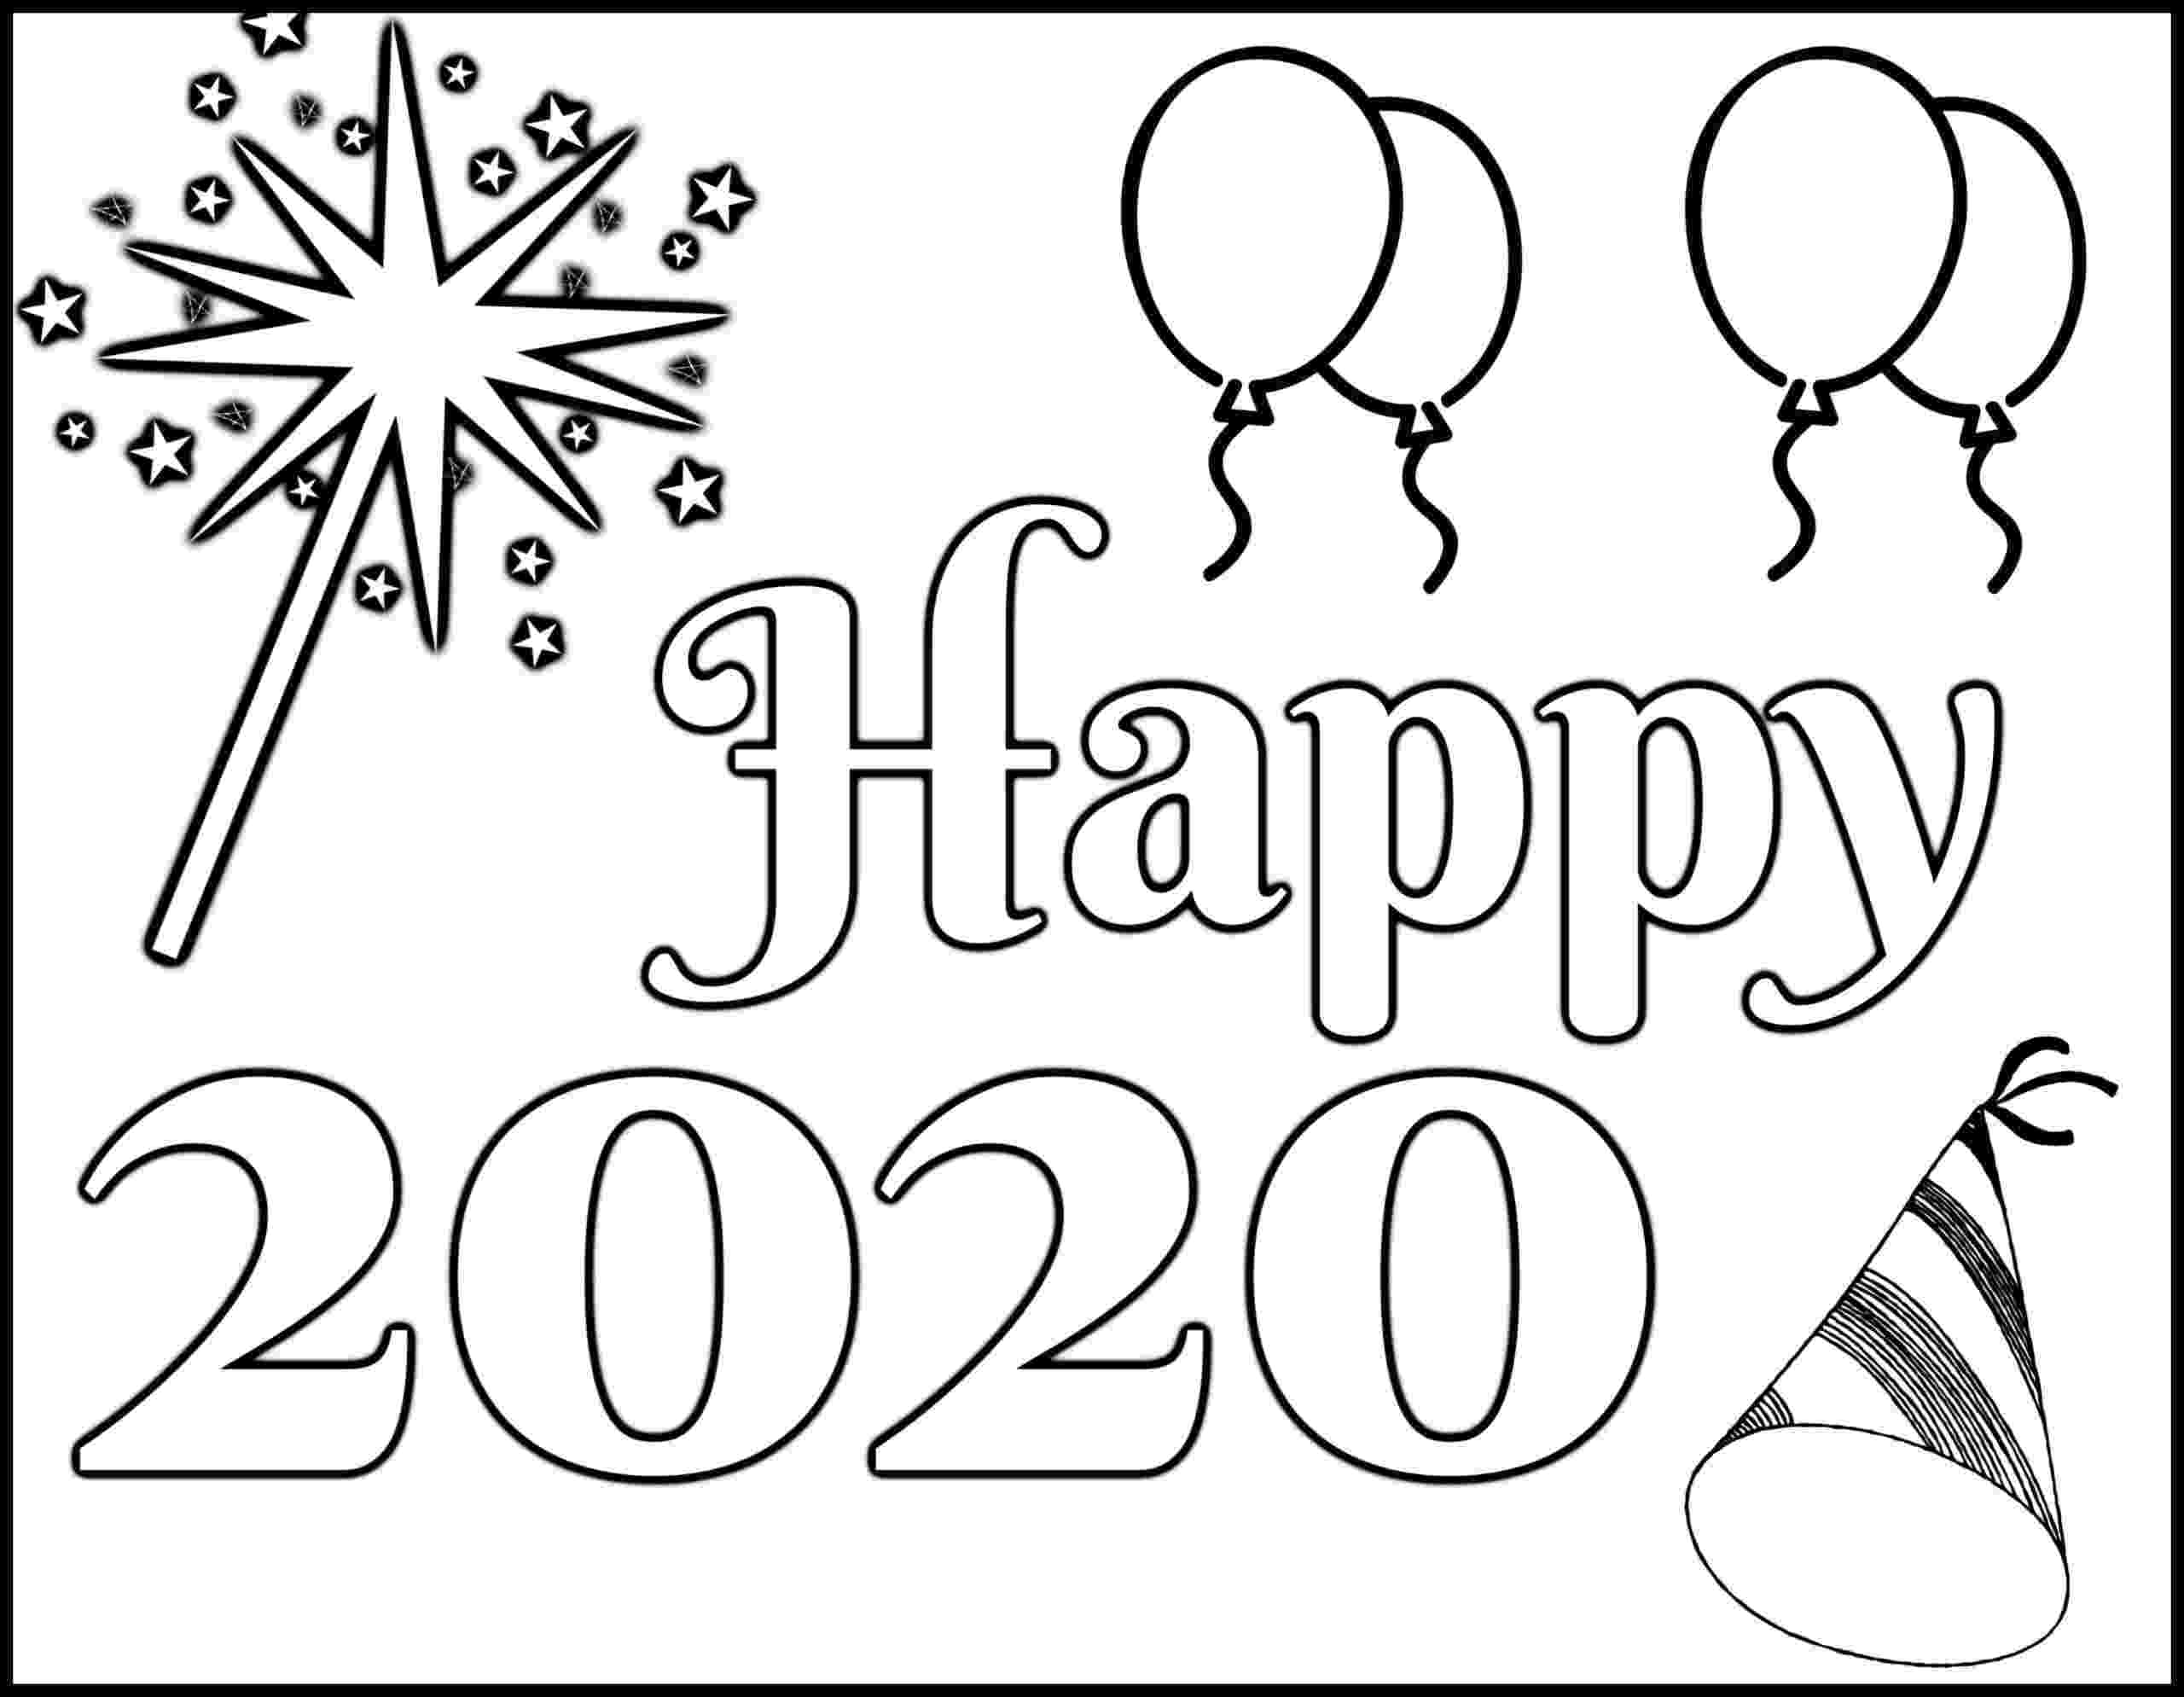 happy new year coloring pages new year39s coloring page 2020 quotlet your light shinequot free coloring new pages happy year